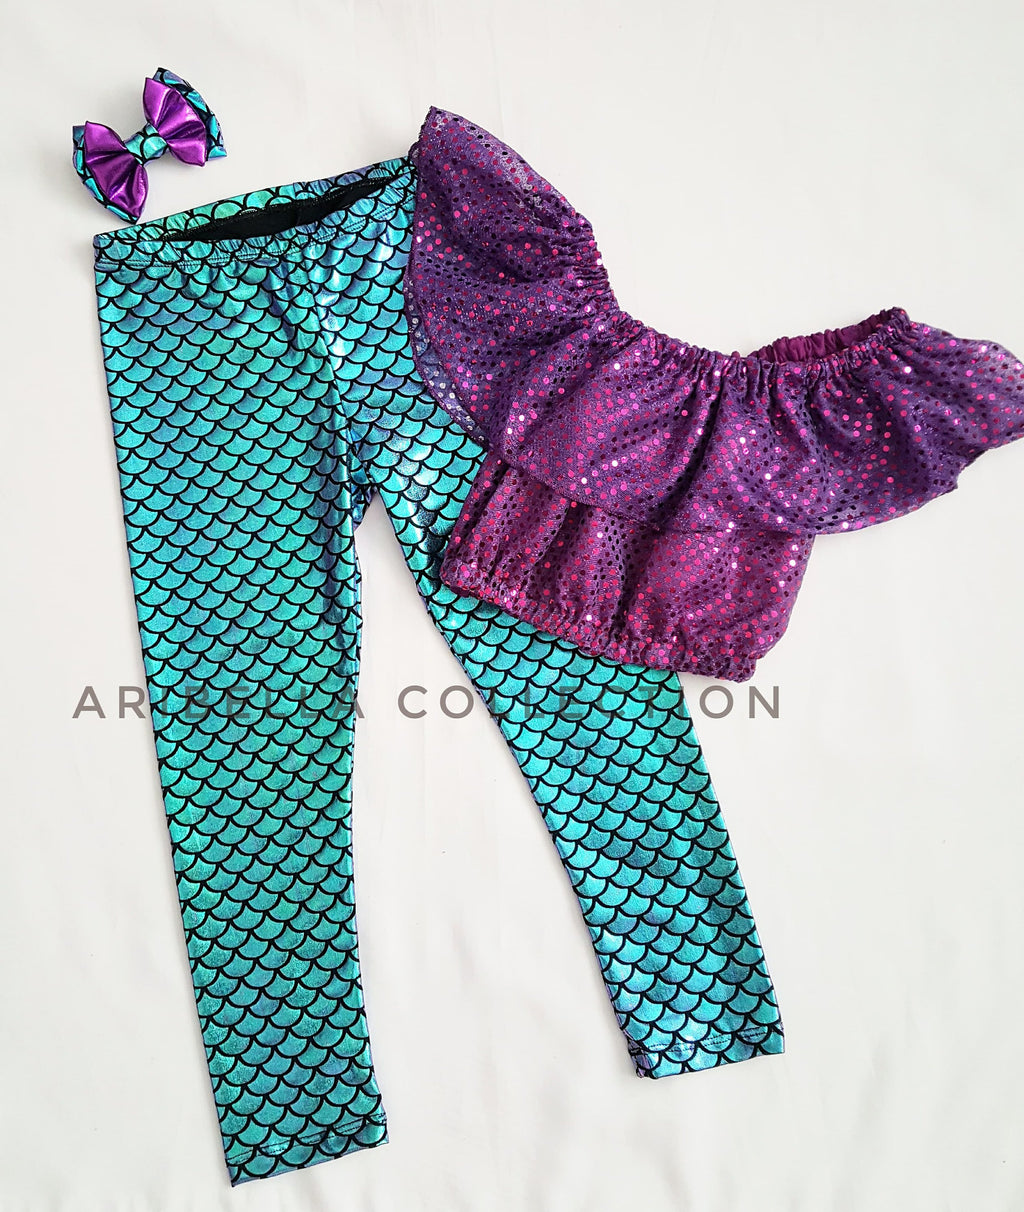 Mermaid Outfit Set - Purple or Plum Confetti Dot Top, Iridescent Multi Color Leggings, Hair Clip Bow - Aribella Collection